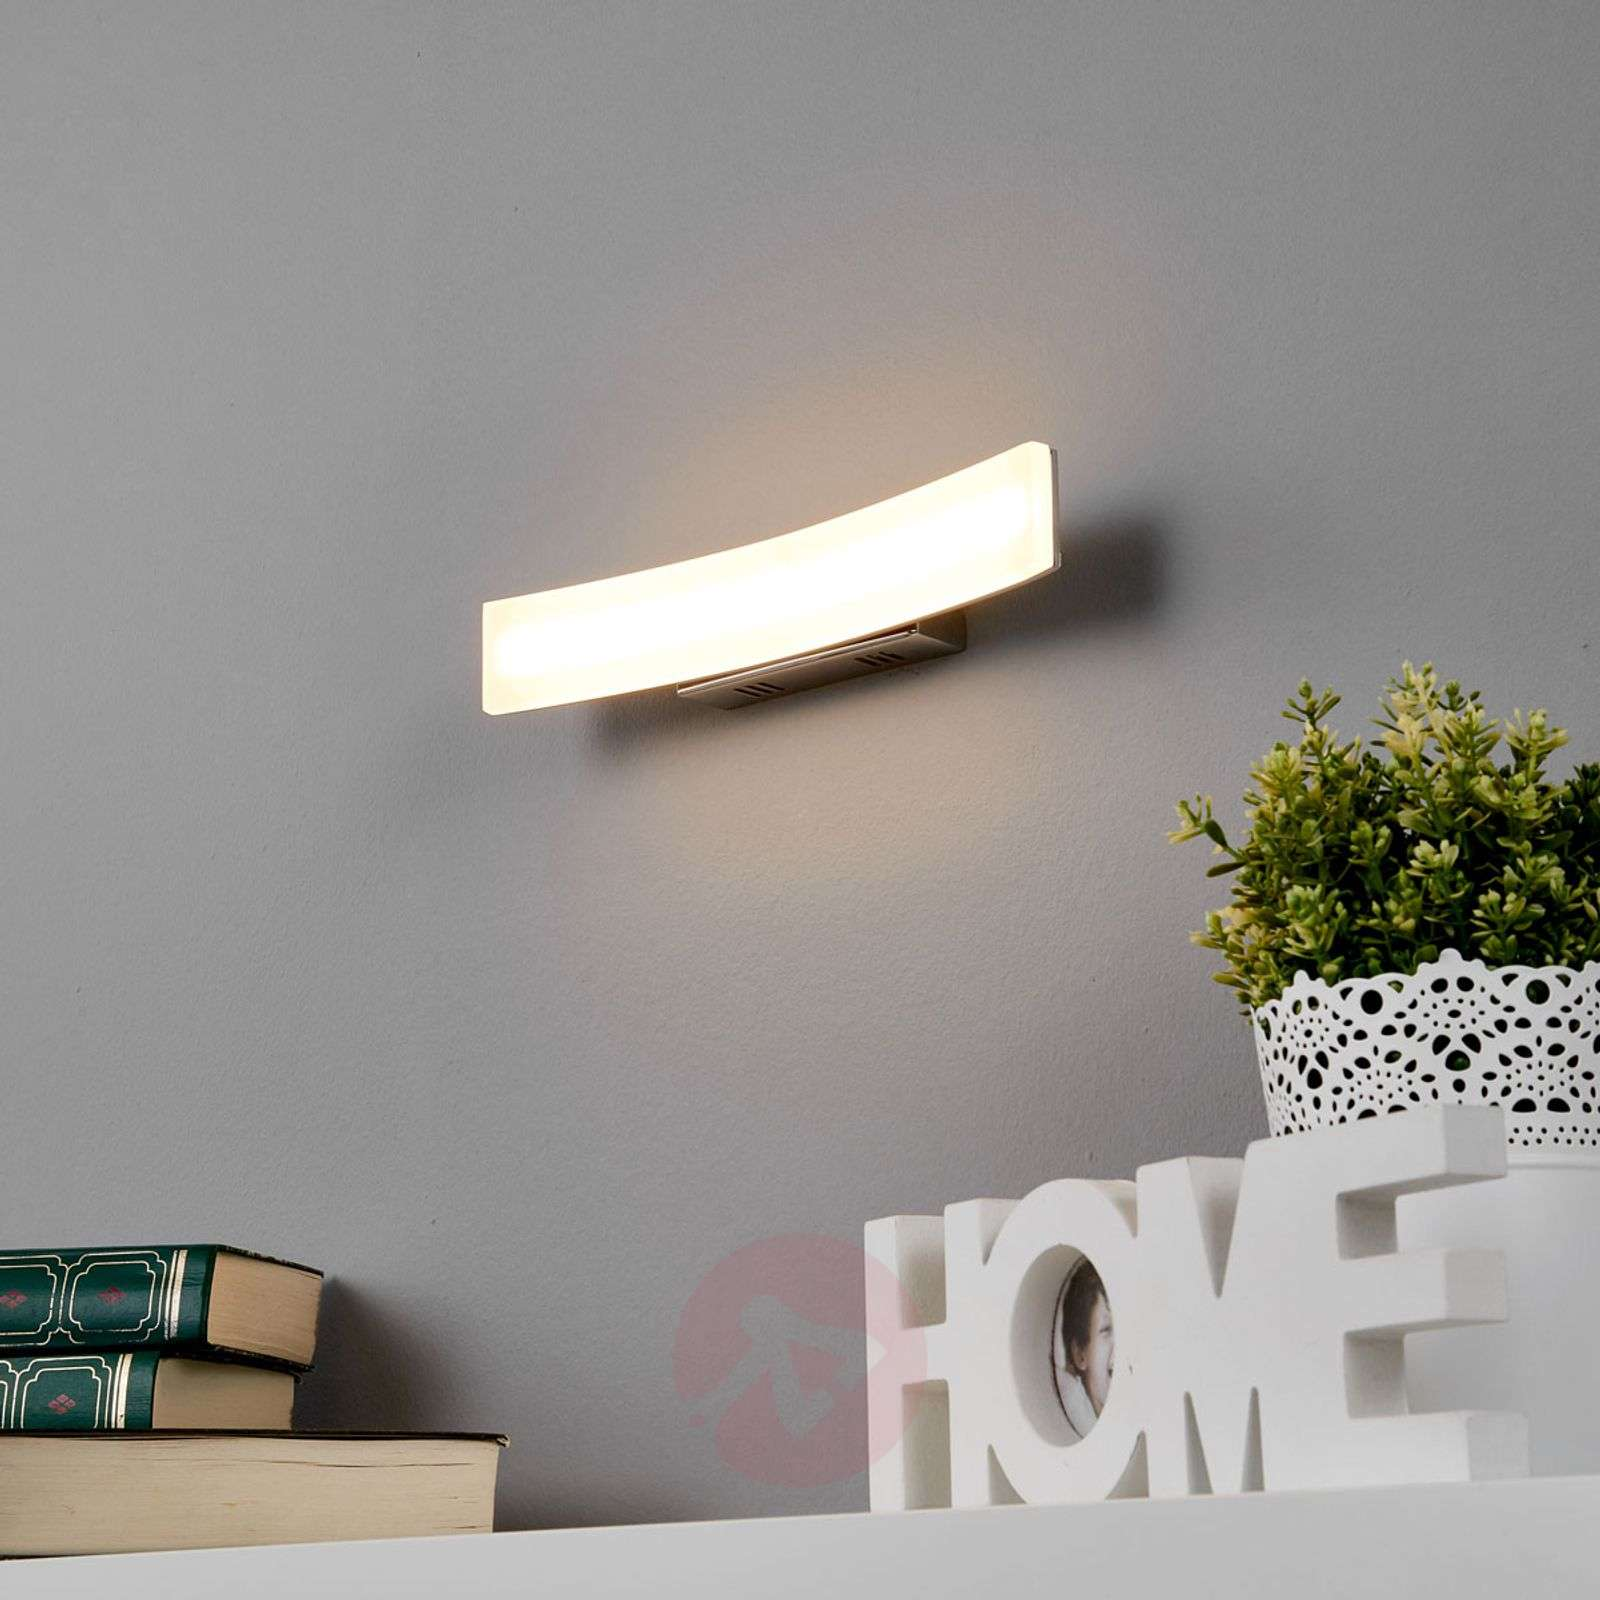 Atractiva lámpara de pared LED Lorian-9984010-01